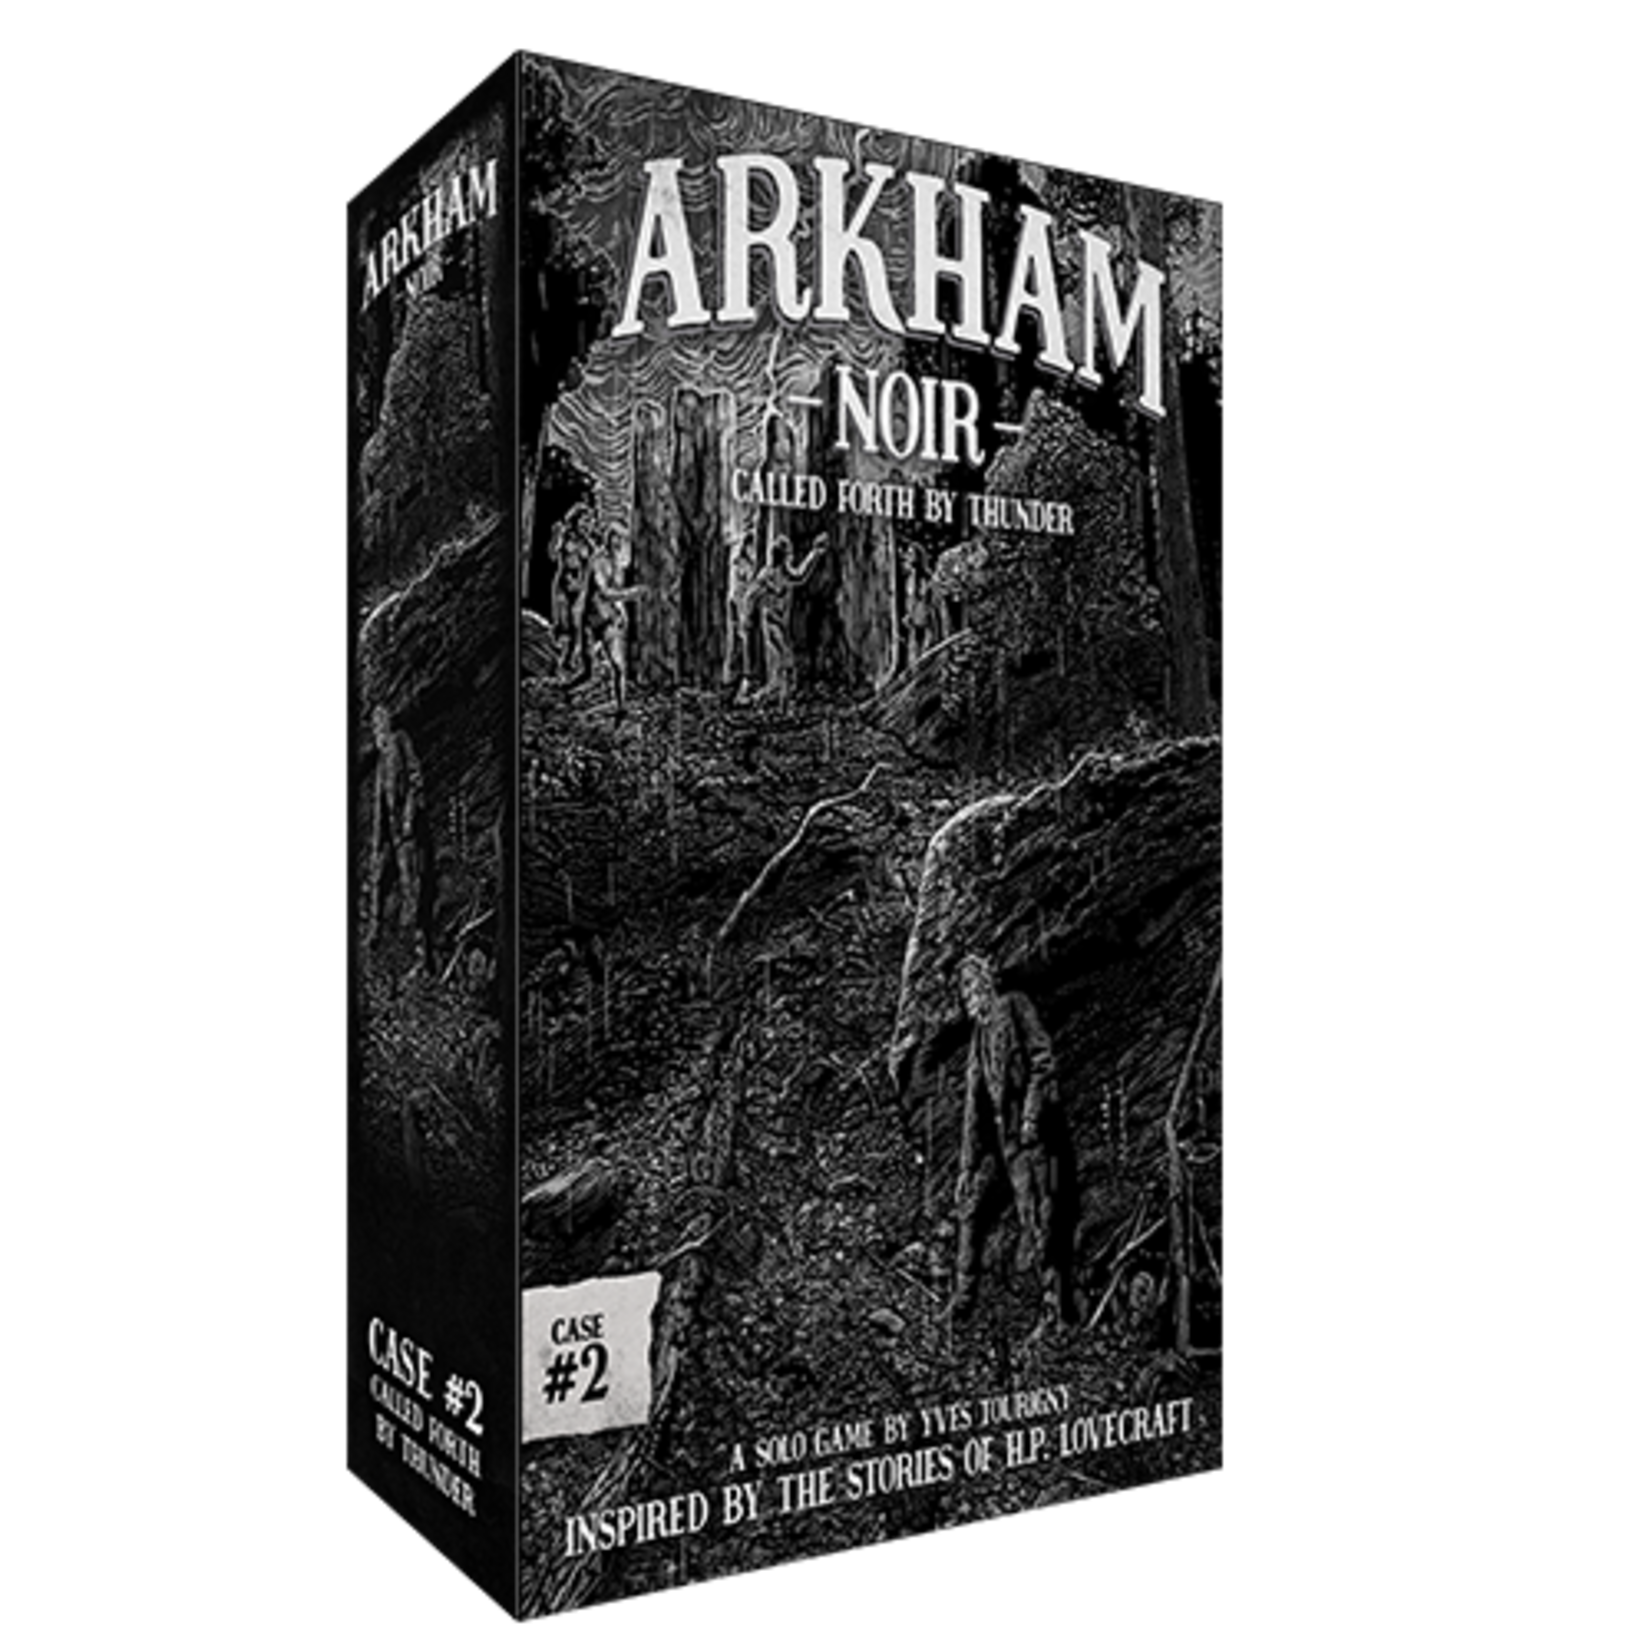 Asmodee Studios Arkham Noir Case #2 Called Forth by Thunder